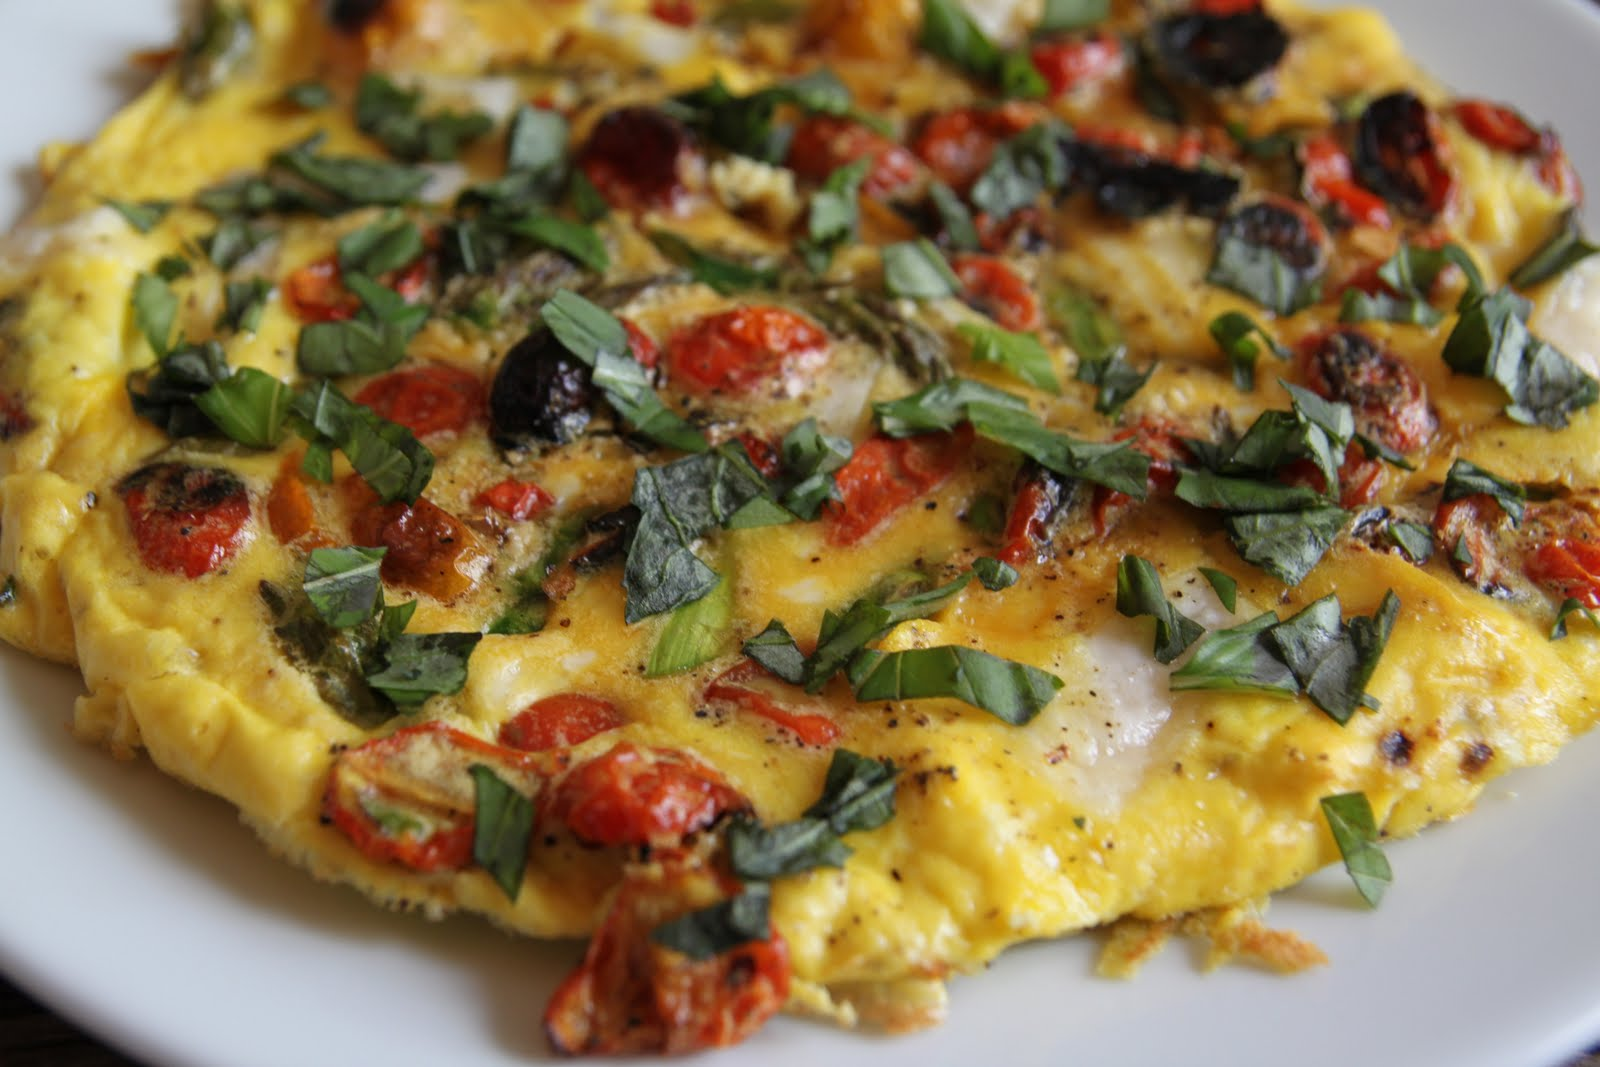 ... Crosby Kitchen: Oven Roasted Tomato, Asparagus, & Goat Cheese Frittata